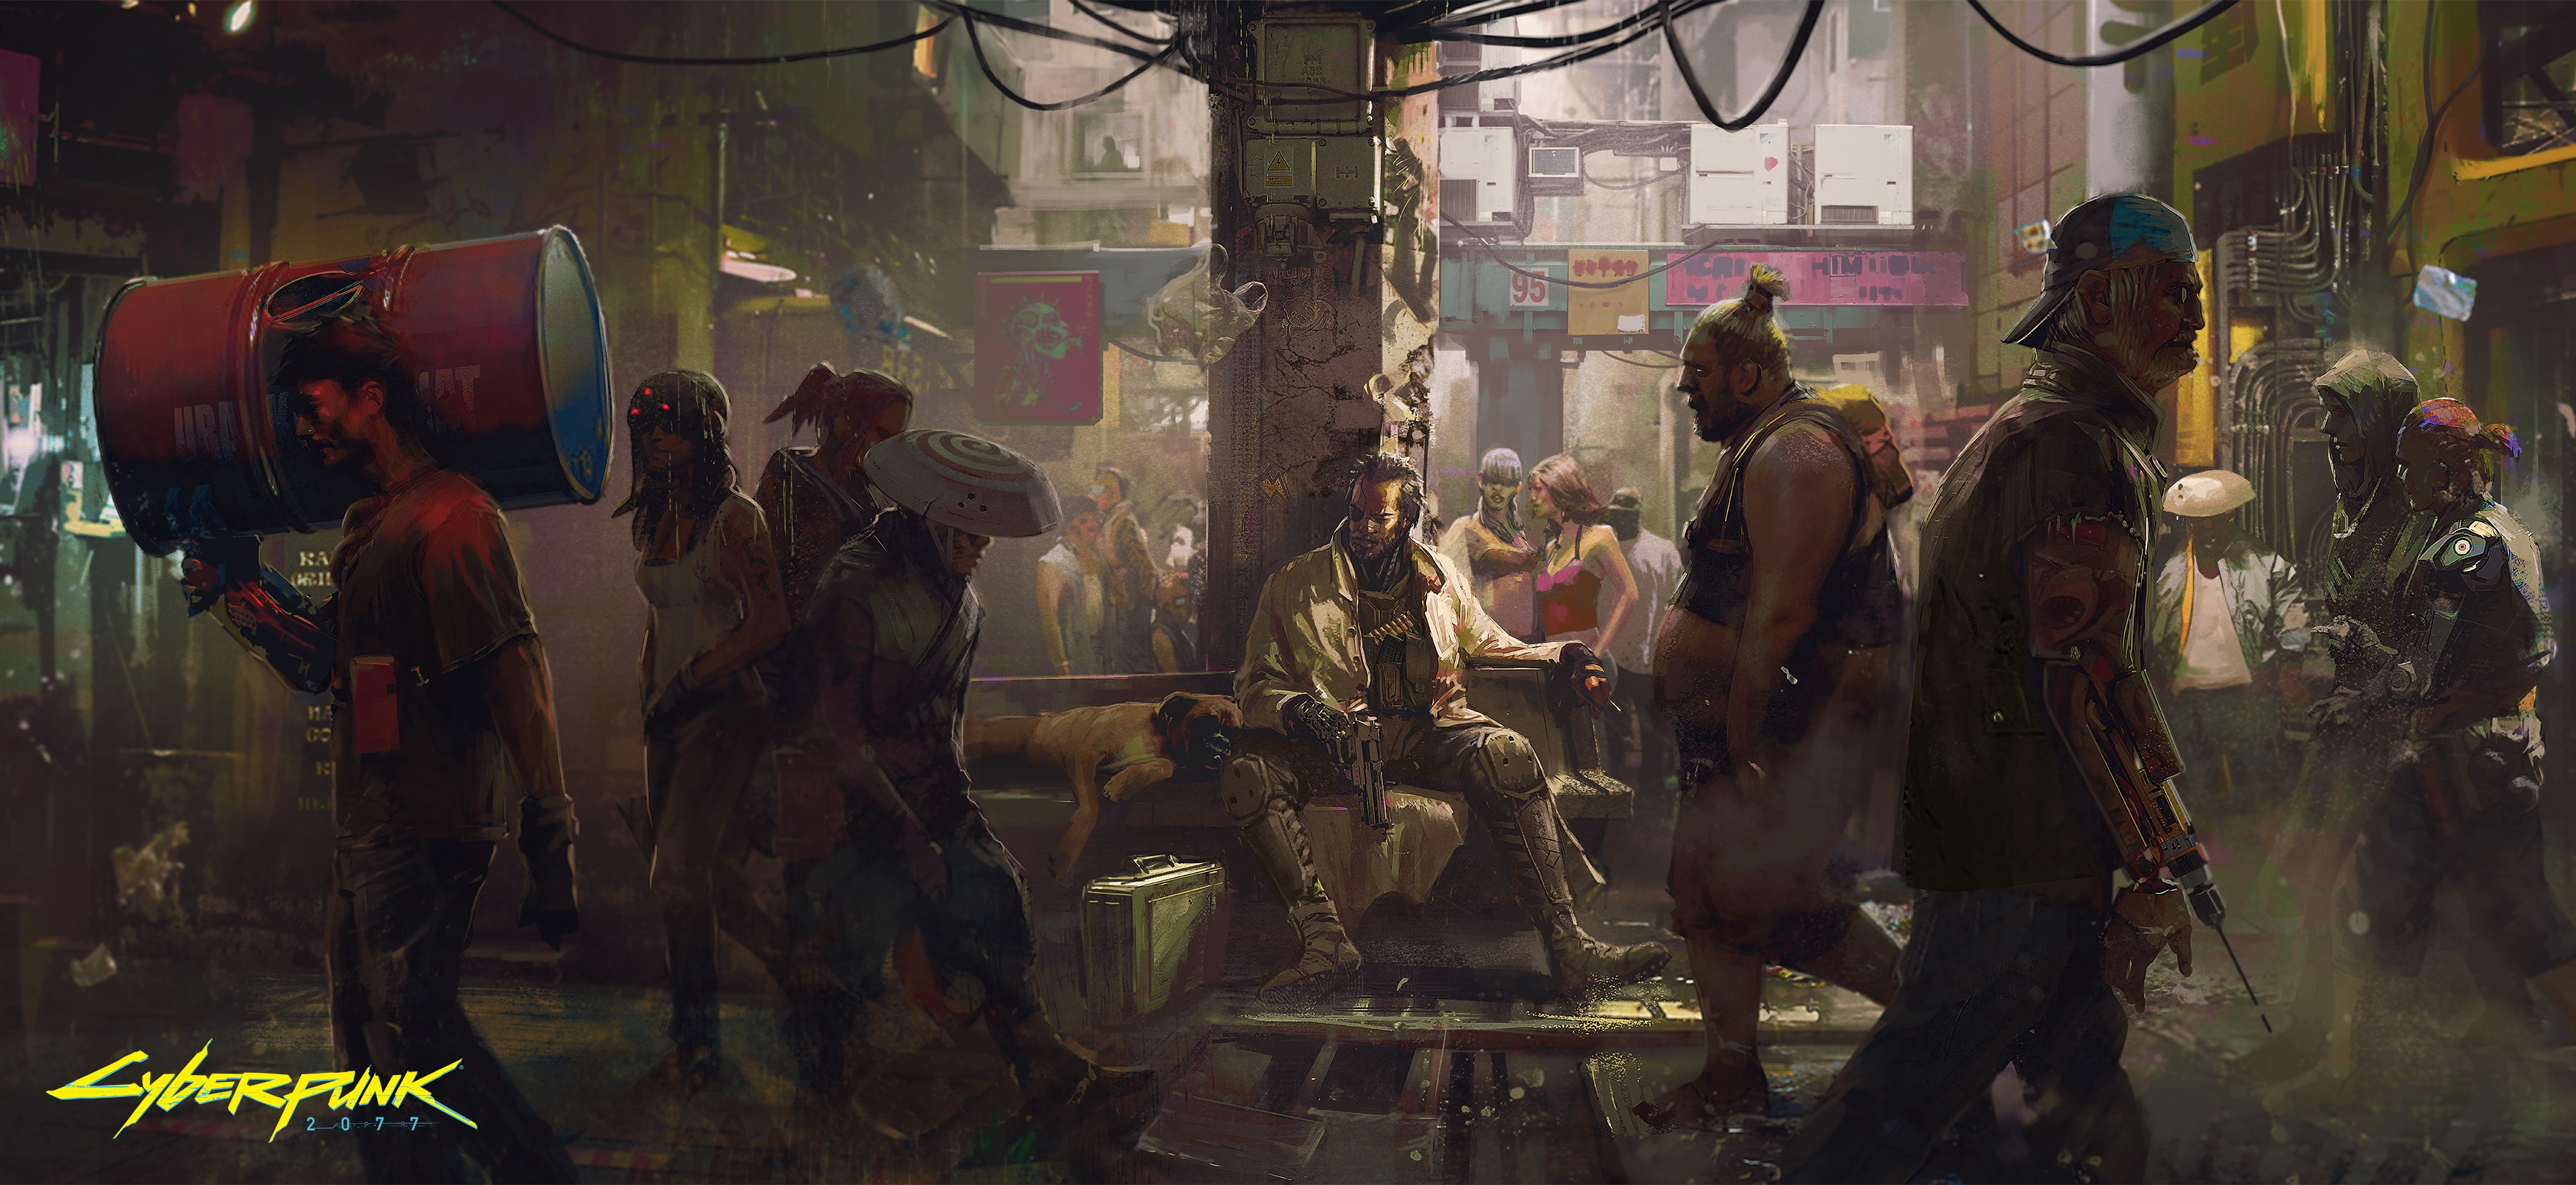 The world of Cyberpunk 2077: This is what awaits you - inspiration, backgrounds and more